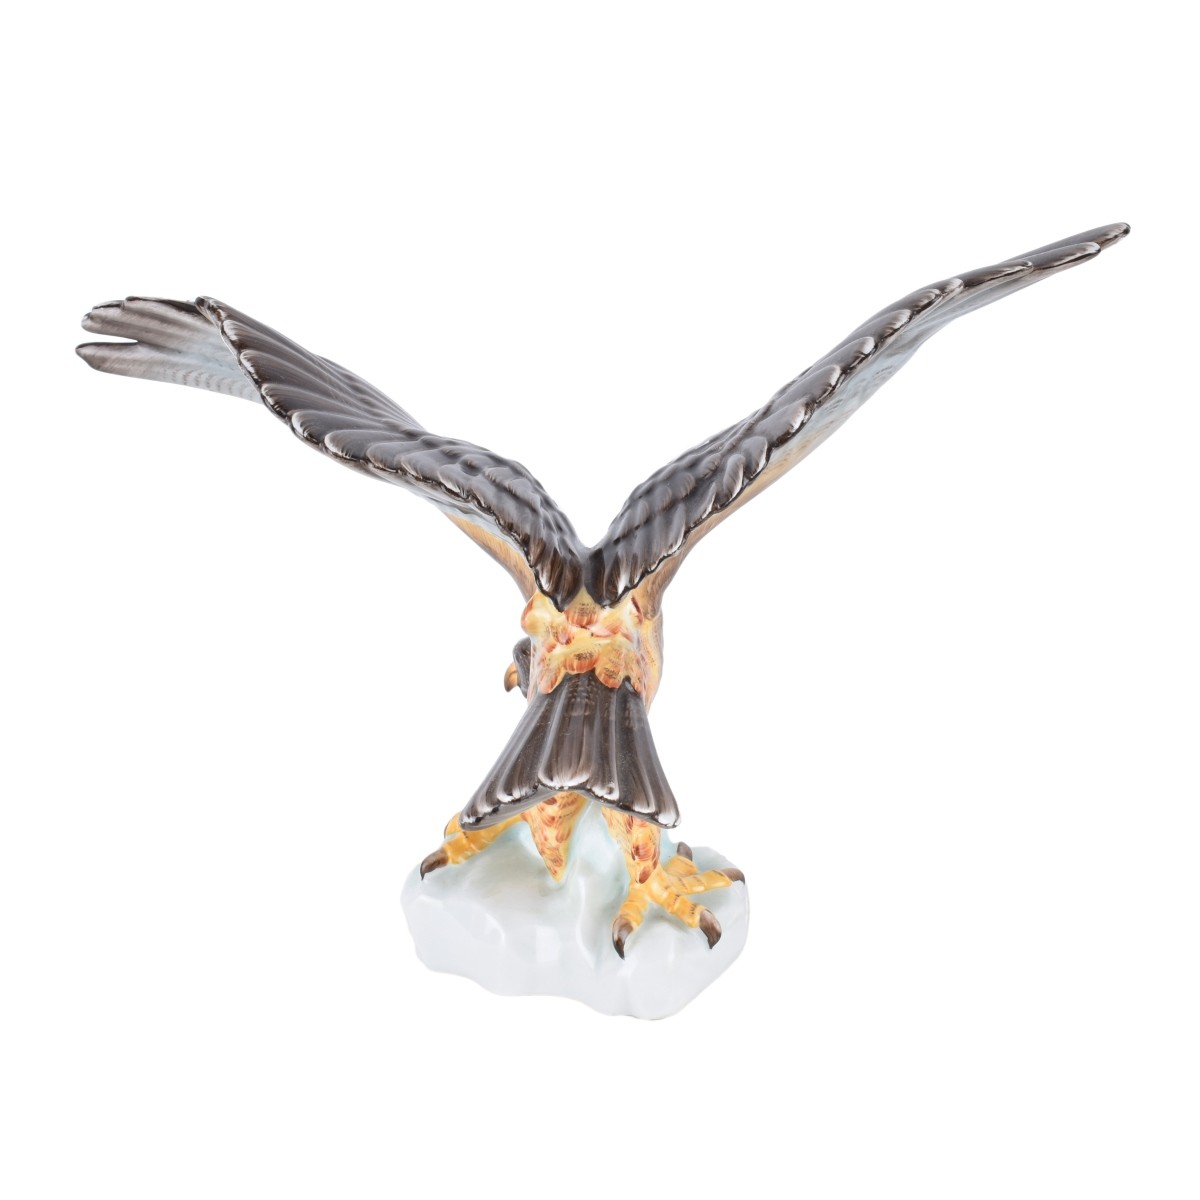 Herend Porcelain Eagle Figurine